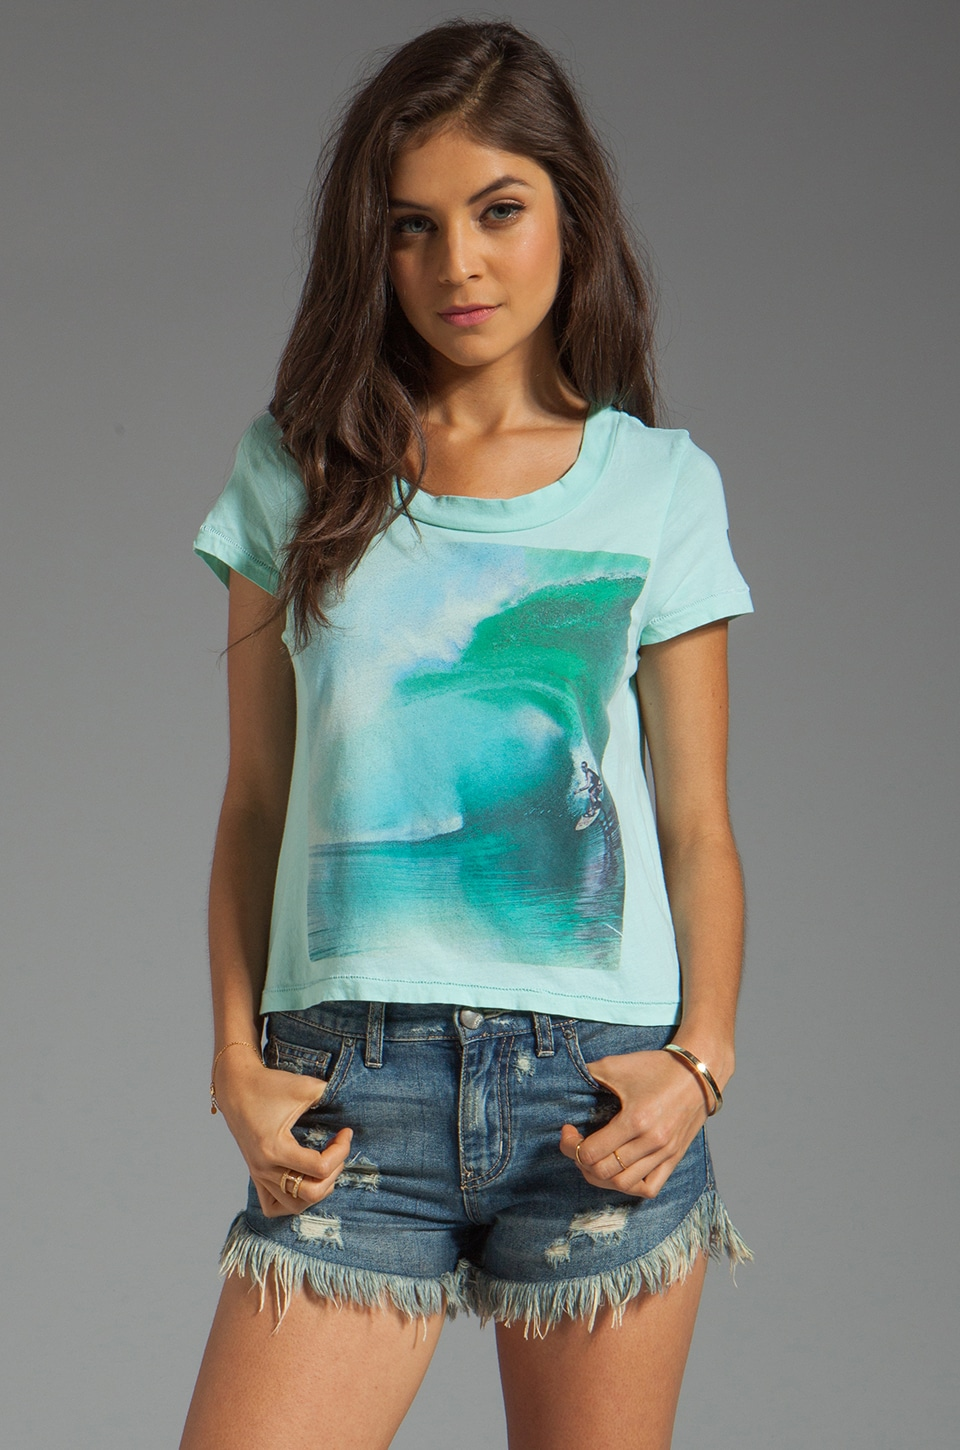 Rebel Yell Surf Crop Tee in Vintage Mint